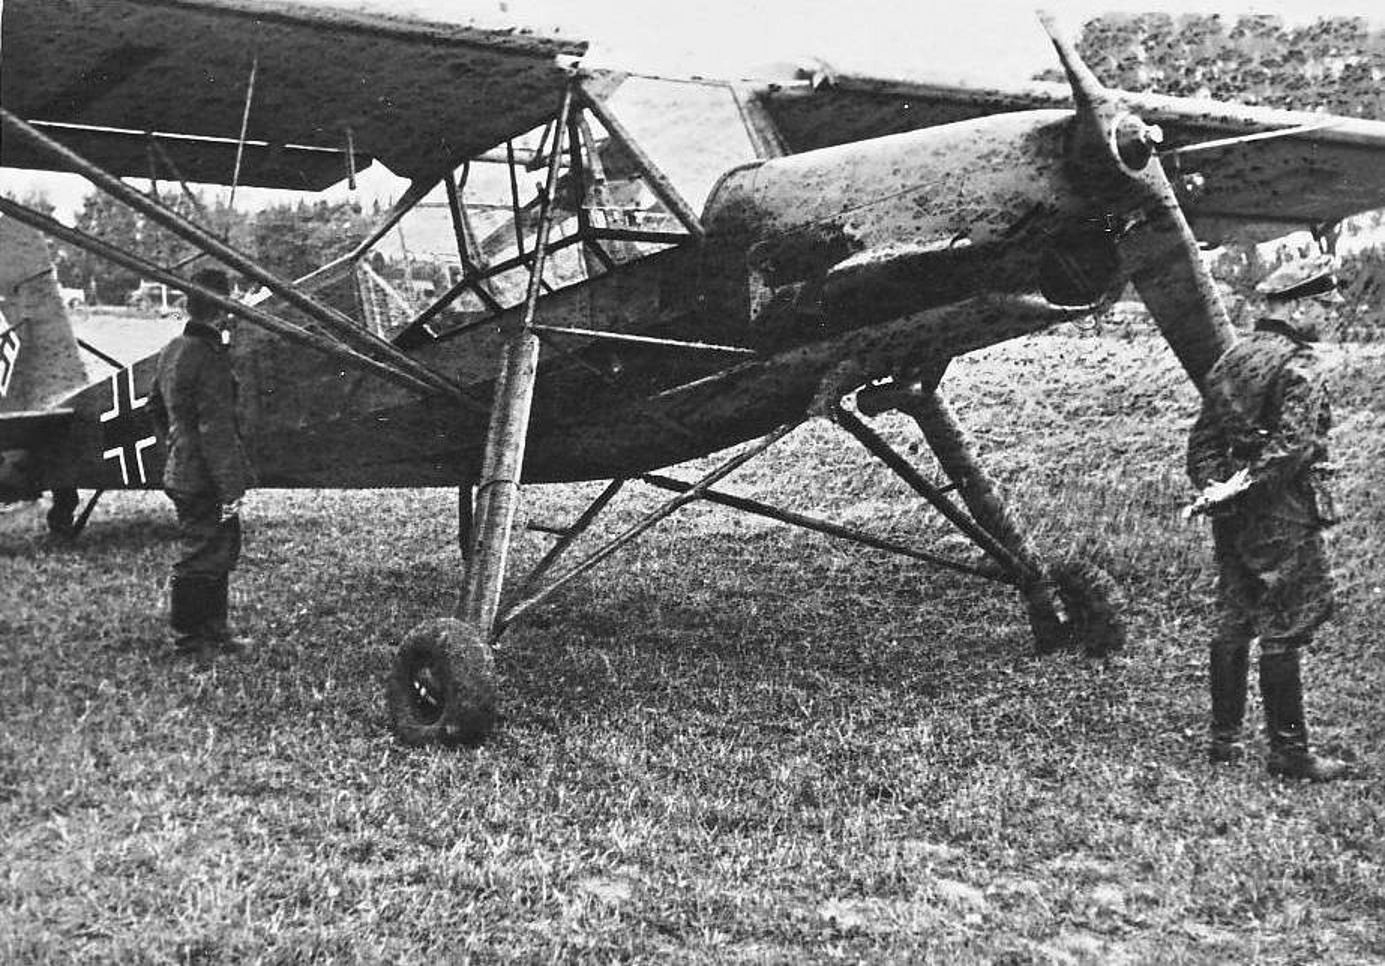 http://upload.wikimedia.org/wikipedia/commons/5/59/Fieseler_Storch_Ostfront_1941-2.jpg